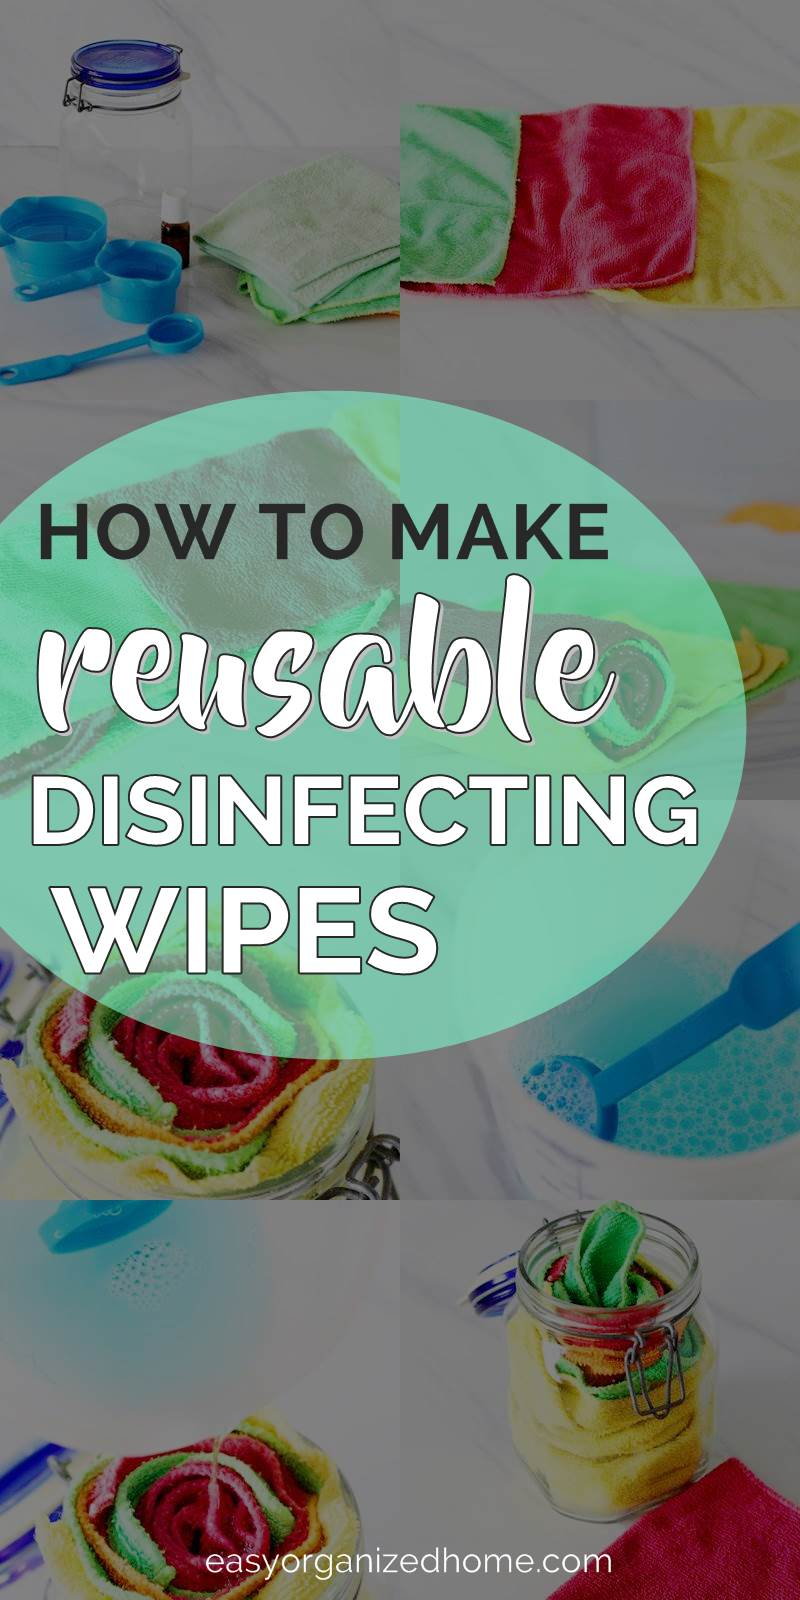 How to make reusable disinfecting wipes. Check this easy tutorial to make homemade cleaning wipes that are eco friendly and safe from chemicals using vinegar, water and essential oils. #cleaning #cleaningwipes